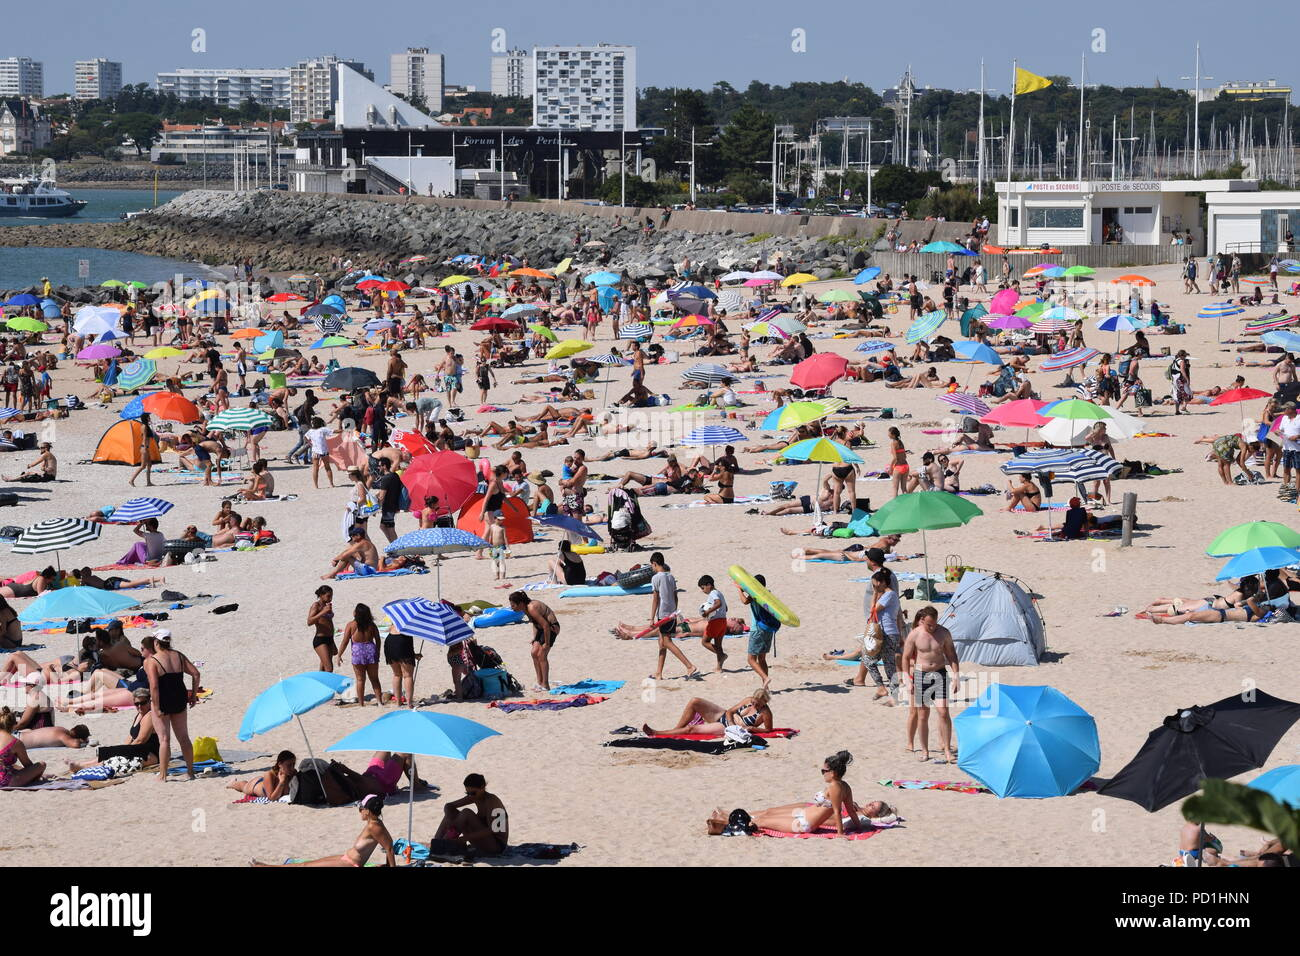 La Rochelle, the Charente-Maritime is concerned since Friday August 2 by the heat wave 67 other departments in France. The highest temperatures are expected for Monday or Tuesday depending on the region, according to Météo-France. Credit: Fabrice Restier/Alamy Live News - Stock Image